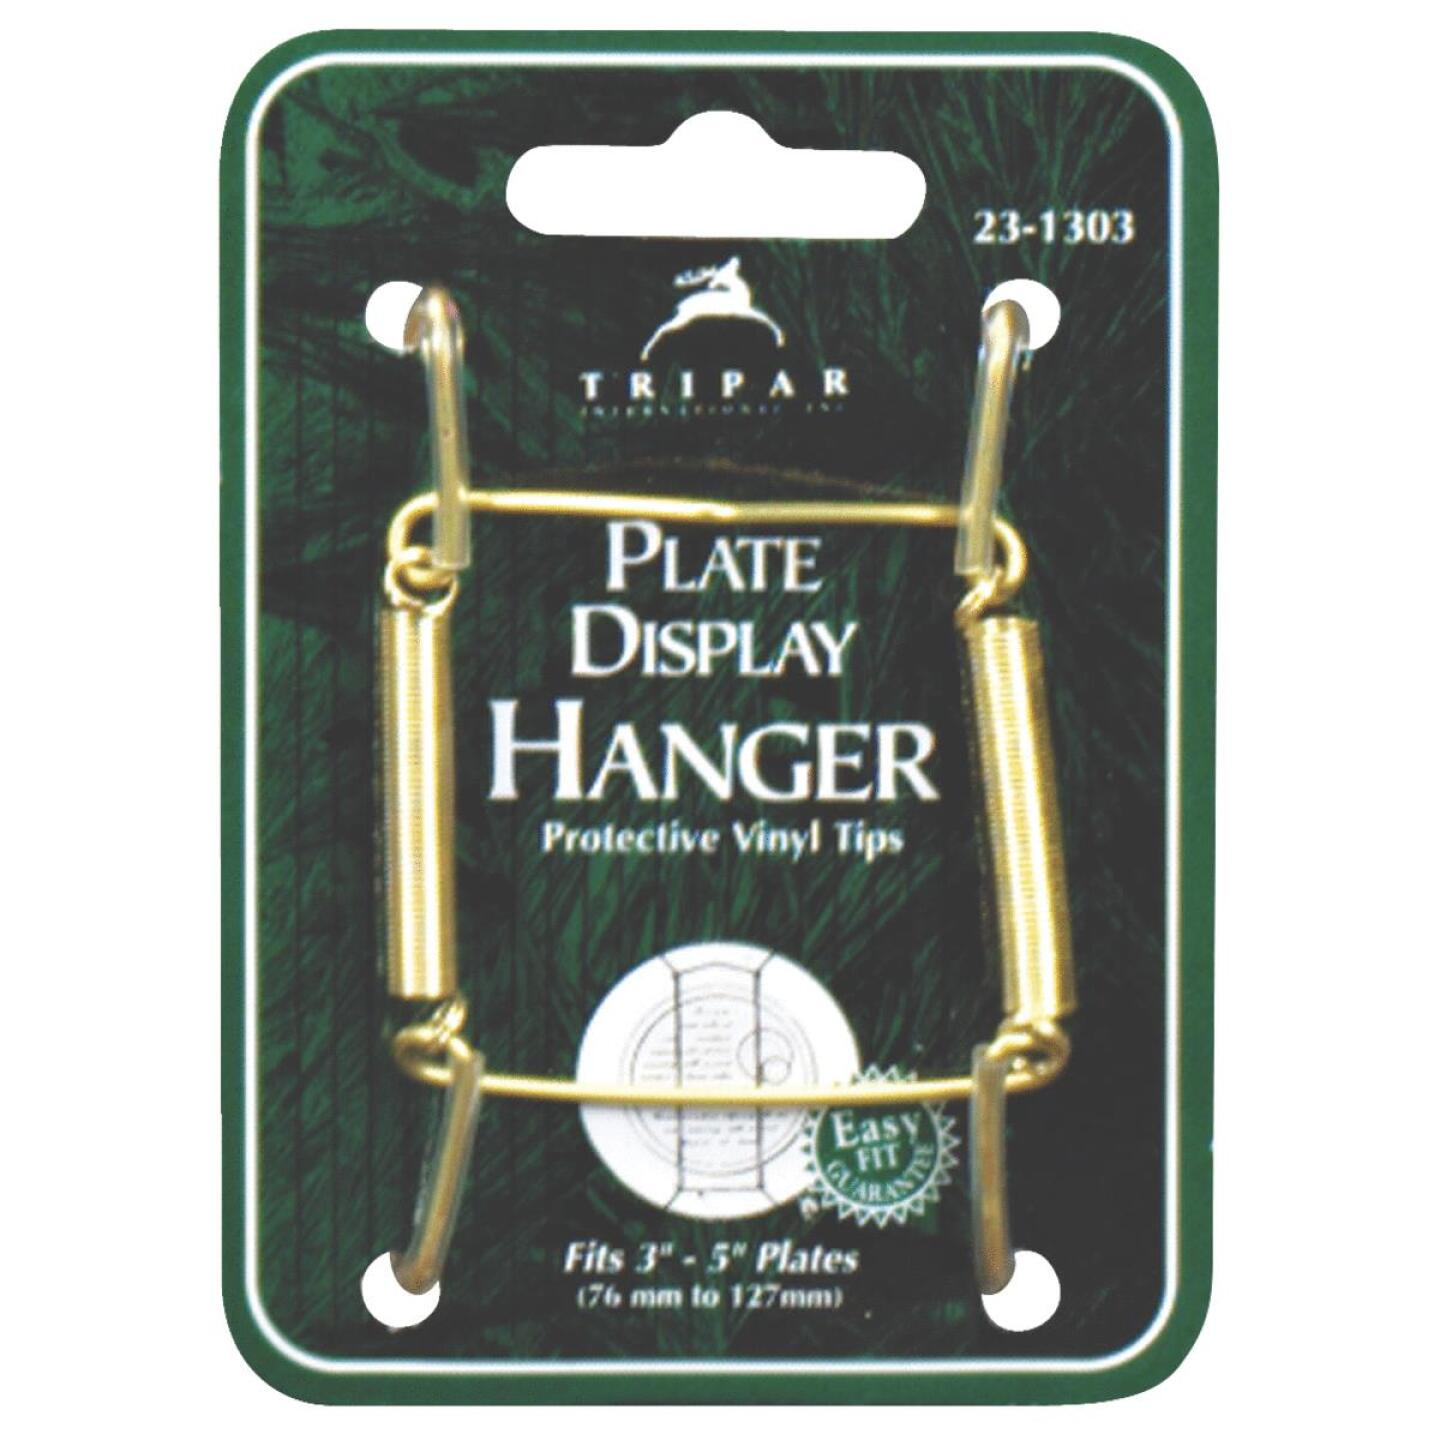 Tripar 3 In. to 5 In. Brass Wire Plate Hanger Image 1